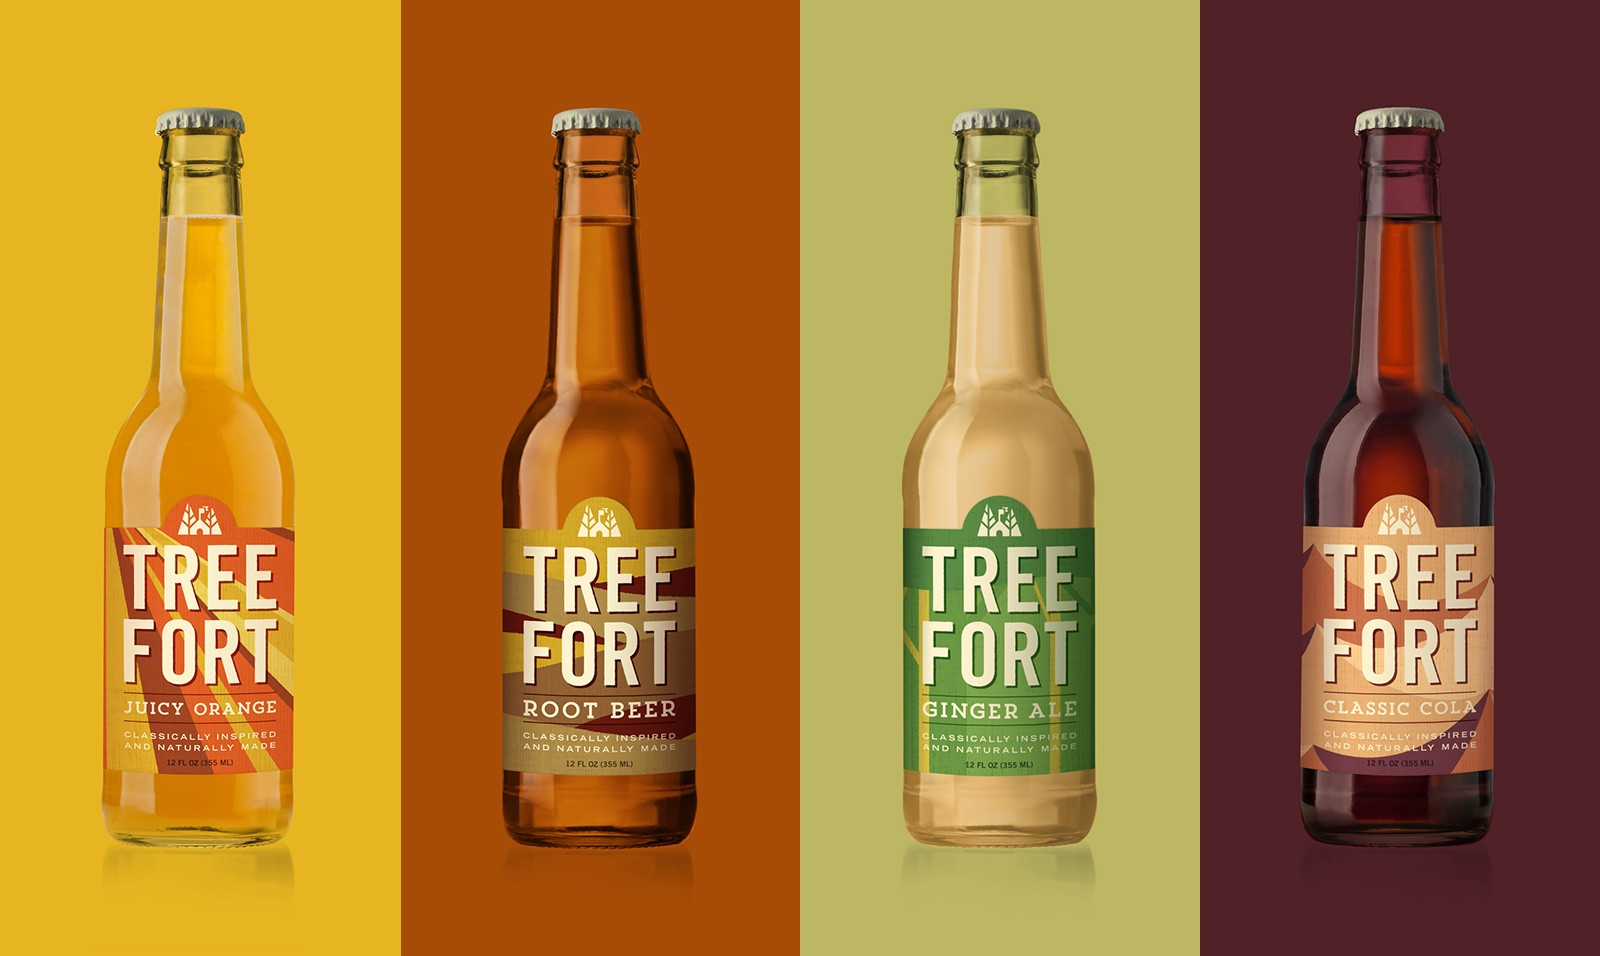 Branding and Packaging Design for Craft Soda Company